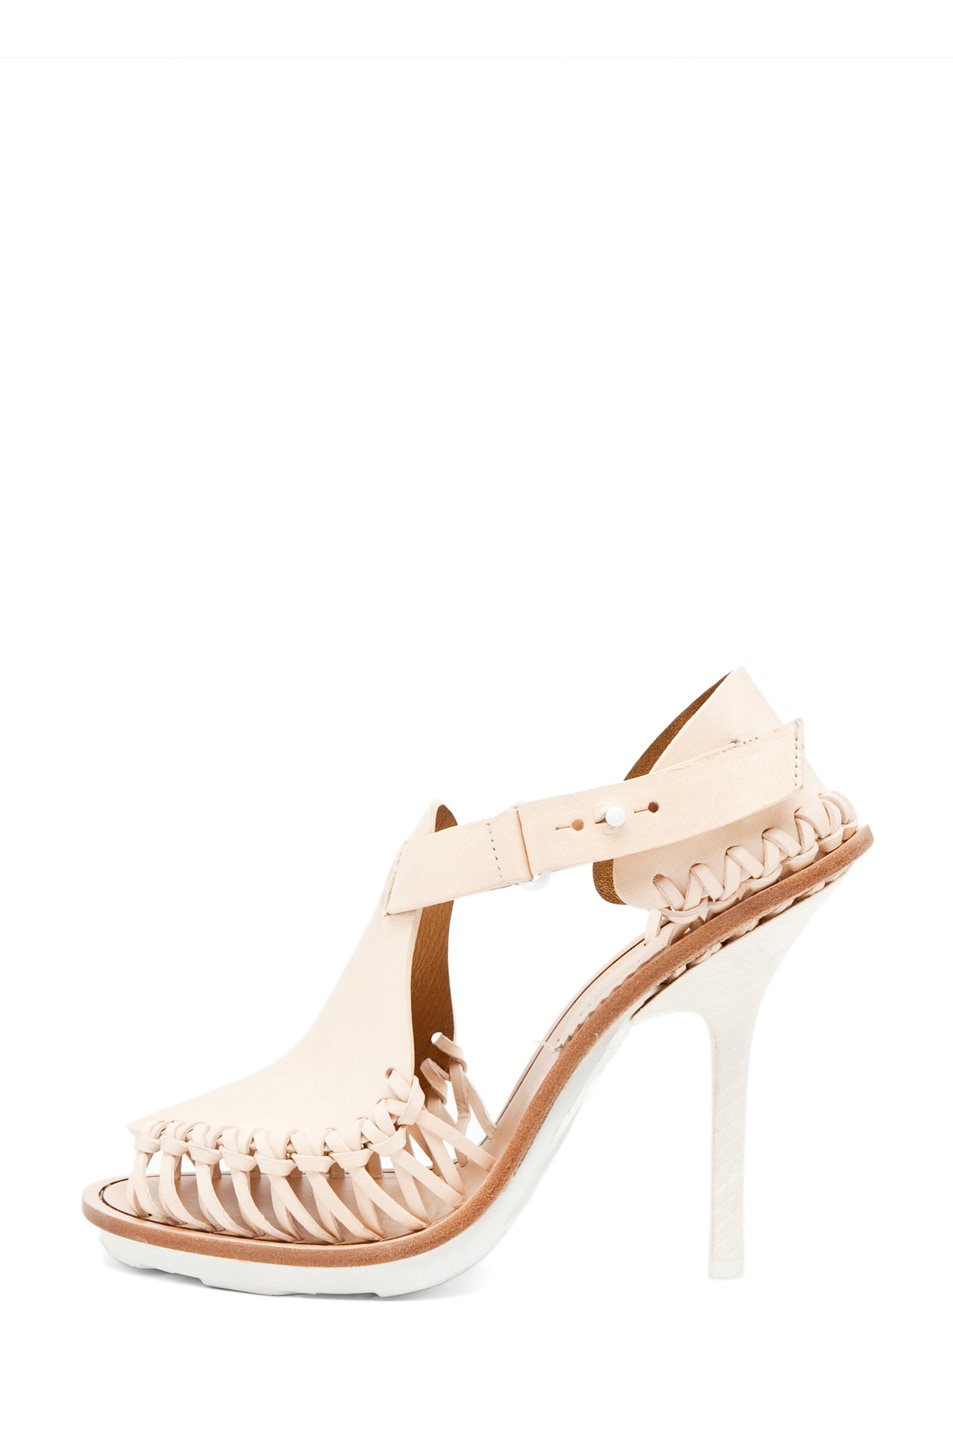 Image 1 of Thakoon by Giuseppe Zanotti Open Toe Heel in Blush